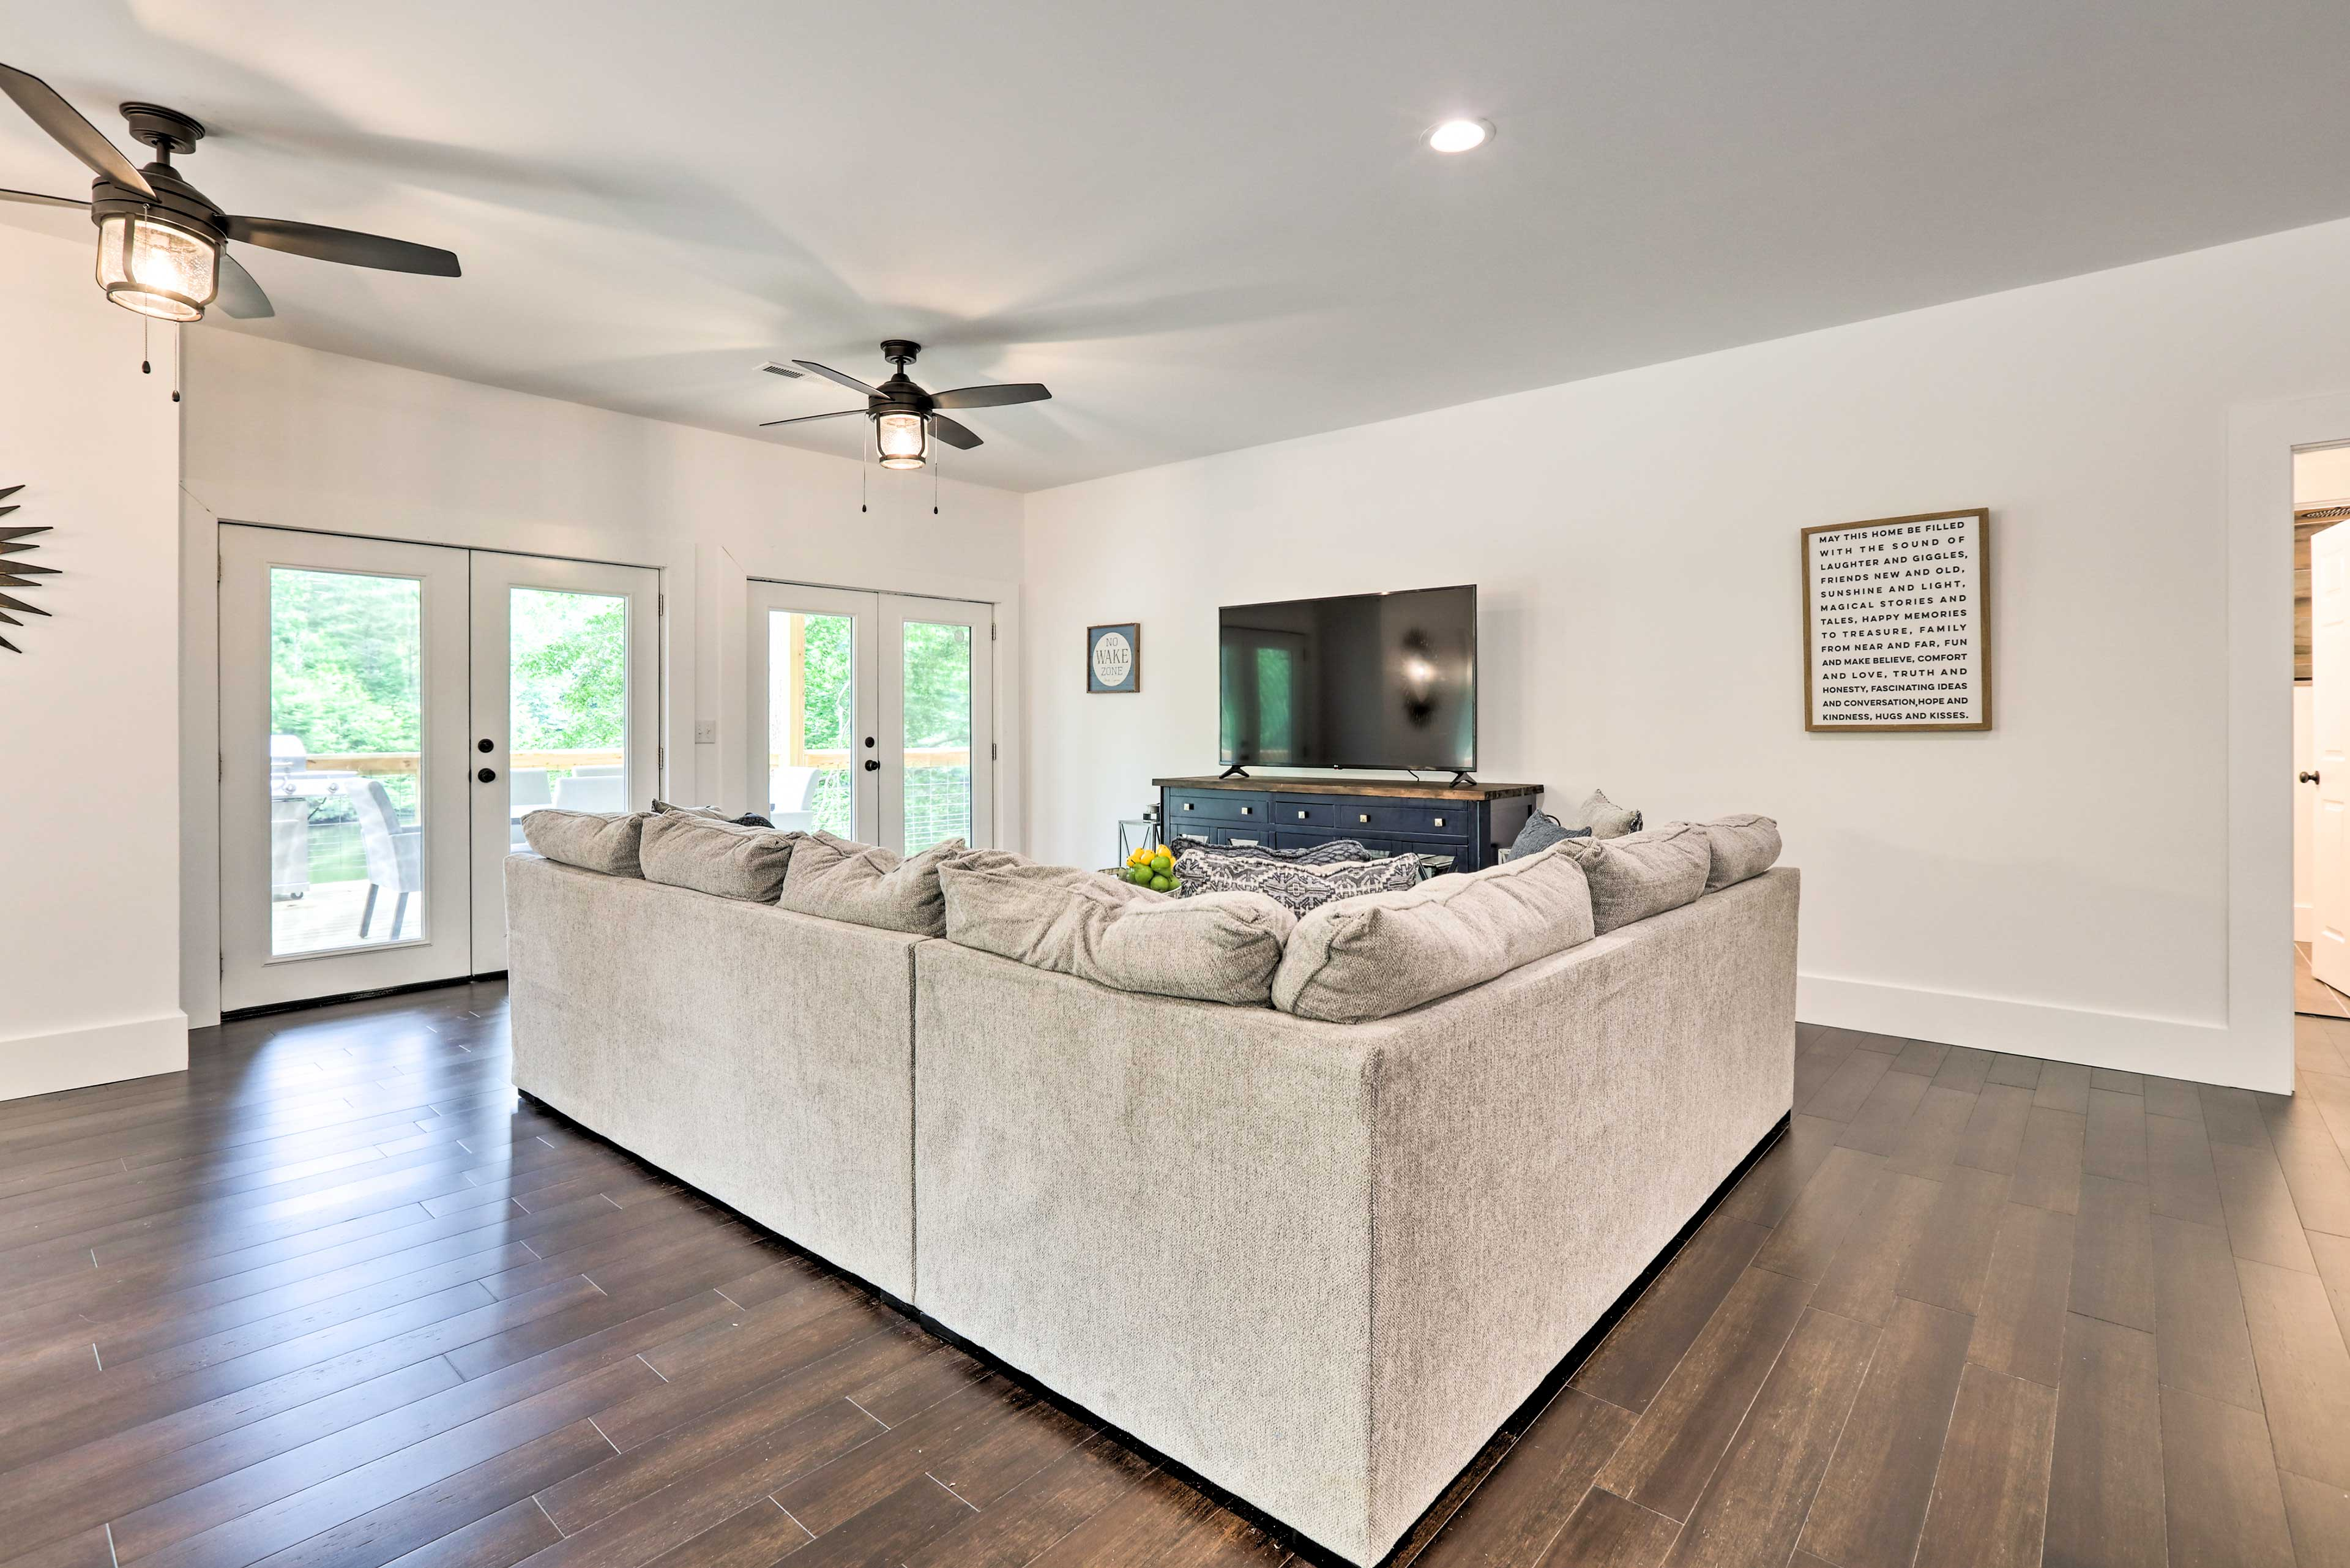 Living Room | Central Heating & Air Conditioning